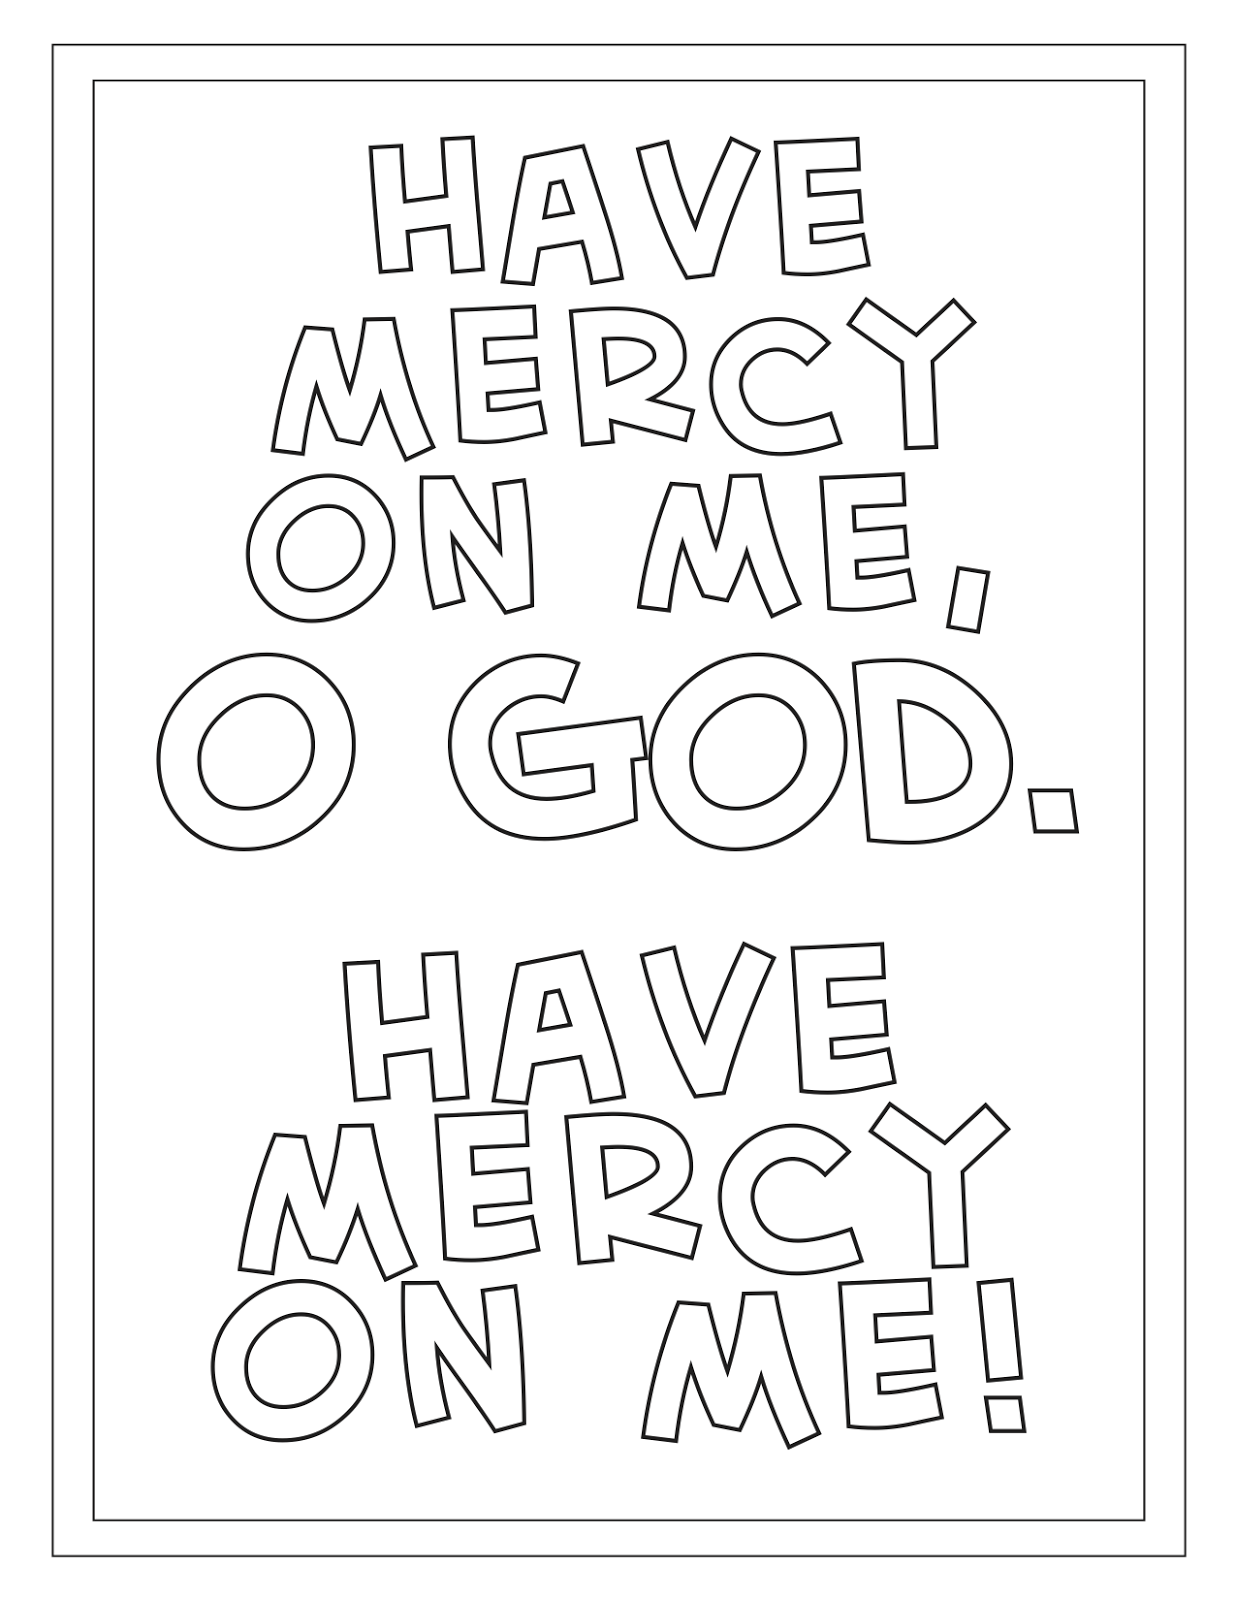 Many Mercies: Clean Week Coloring Pages for the Great